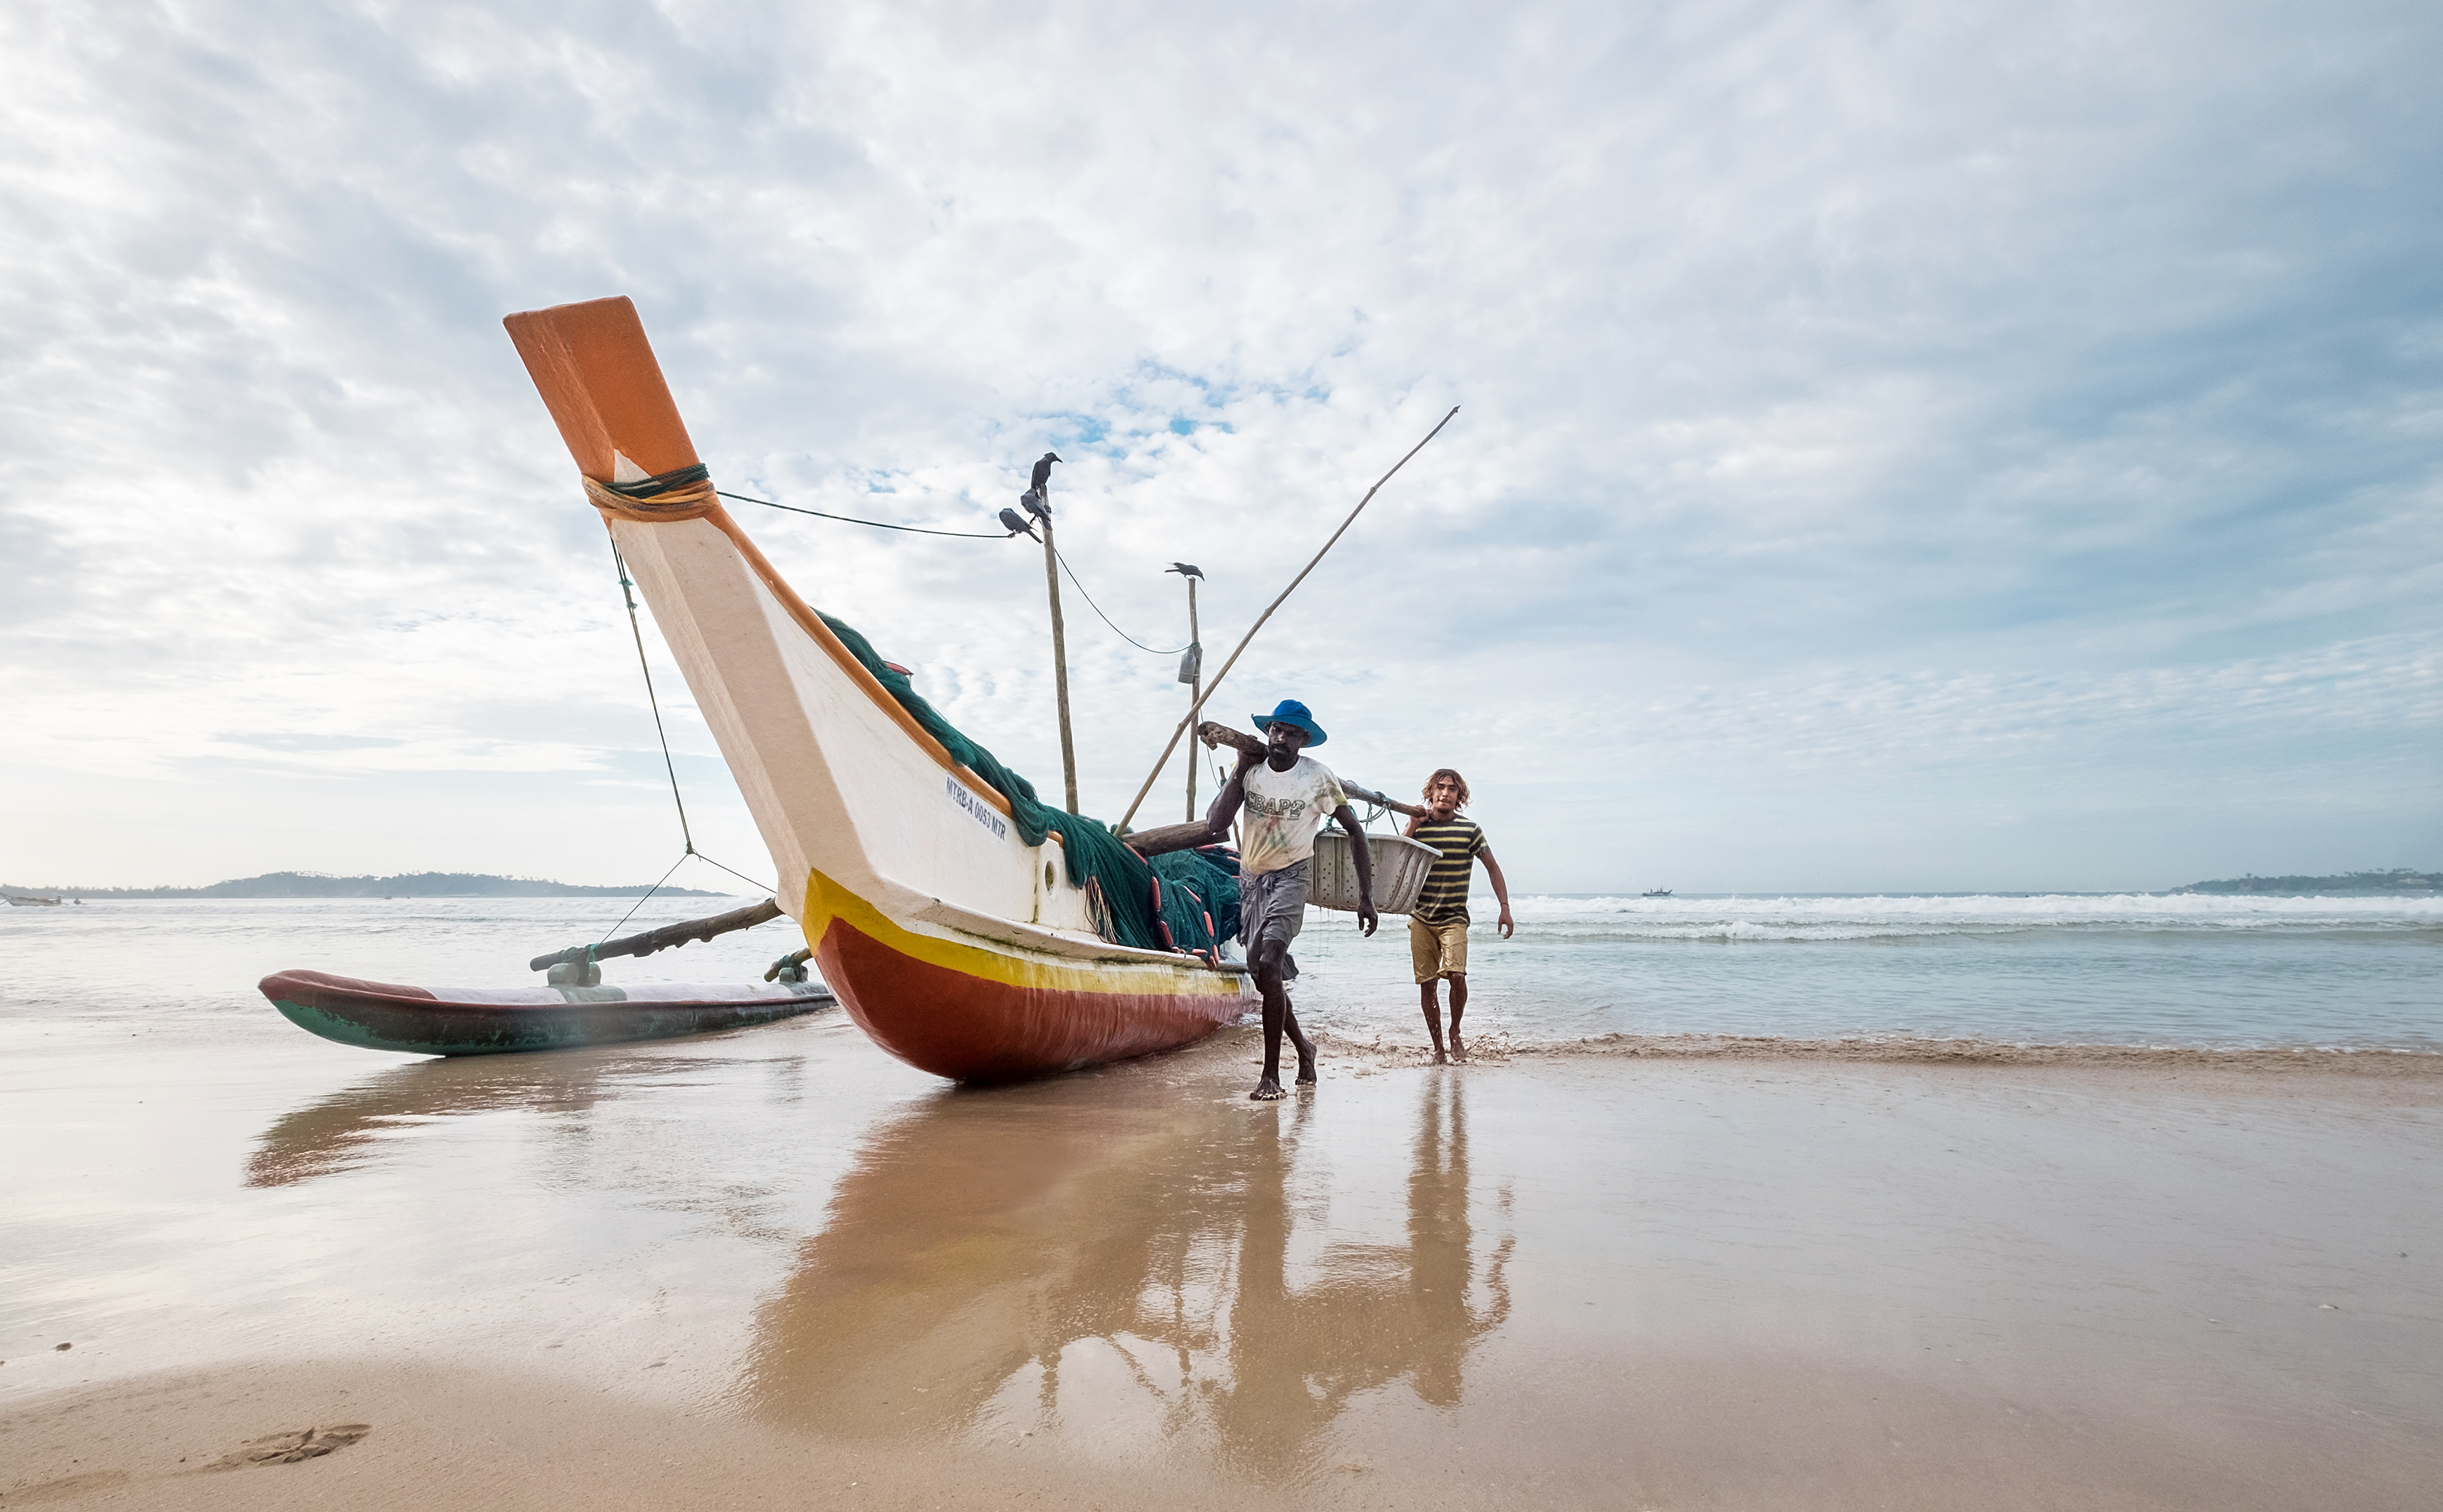 <p>Fishermen carry their catch in Weligama, Sri Lanka. Photo by iStock.com</p>